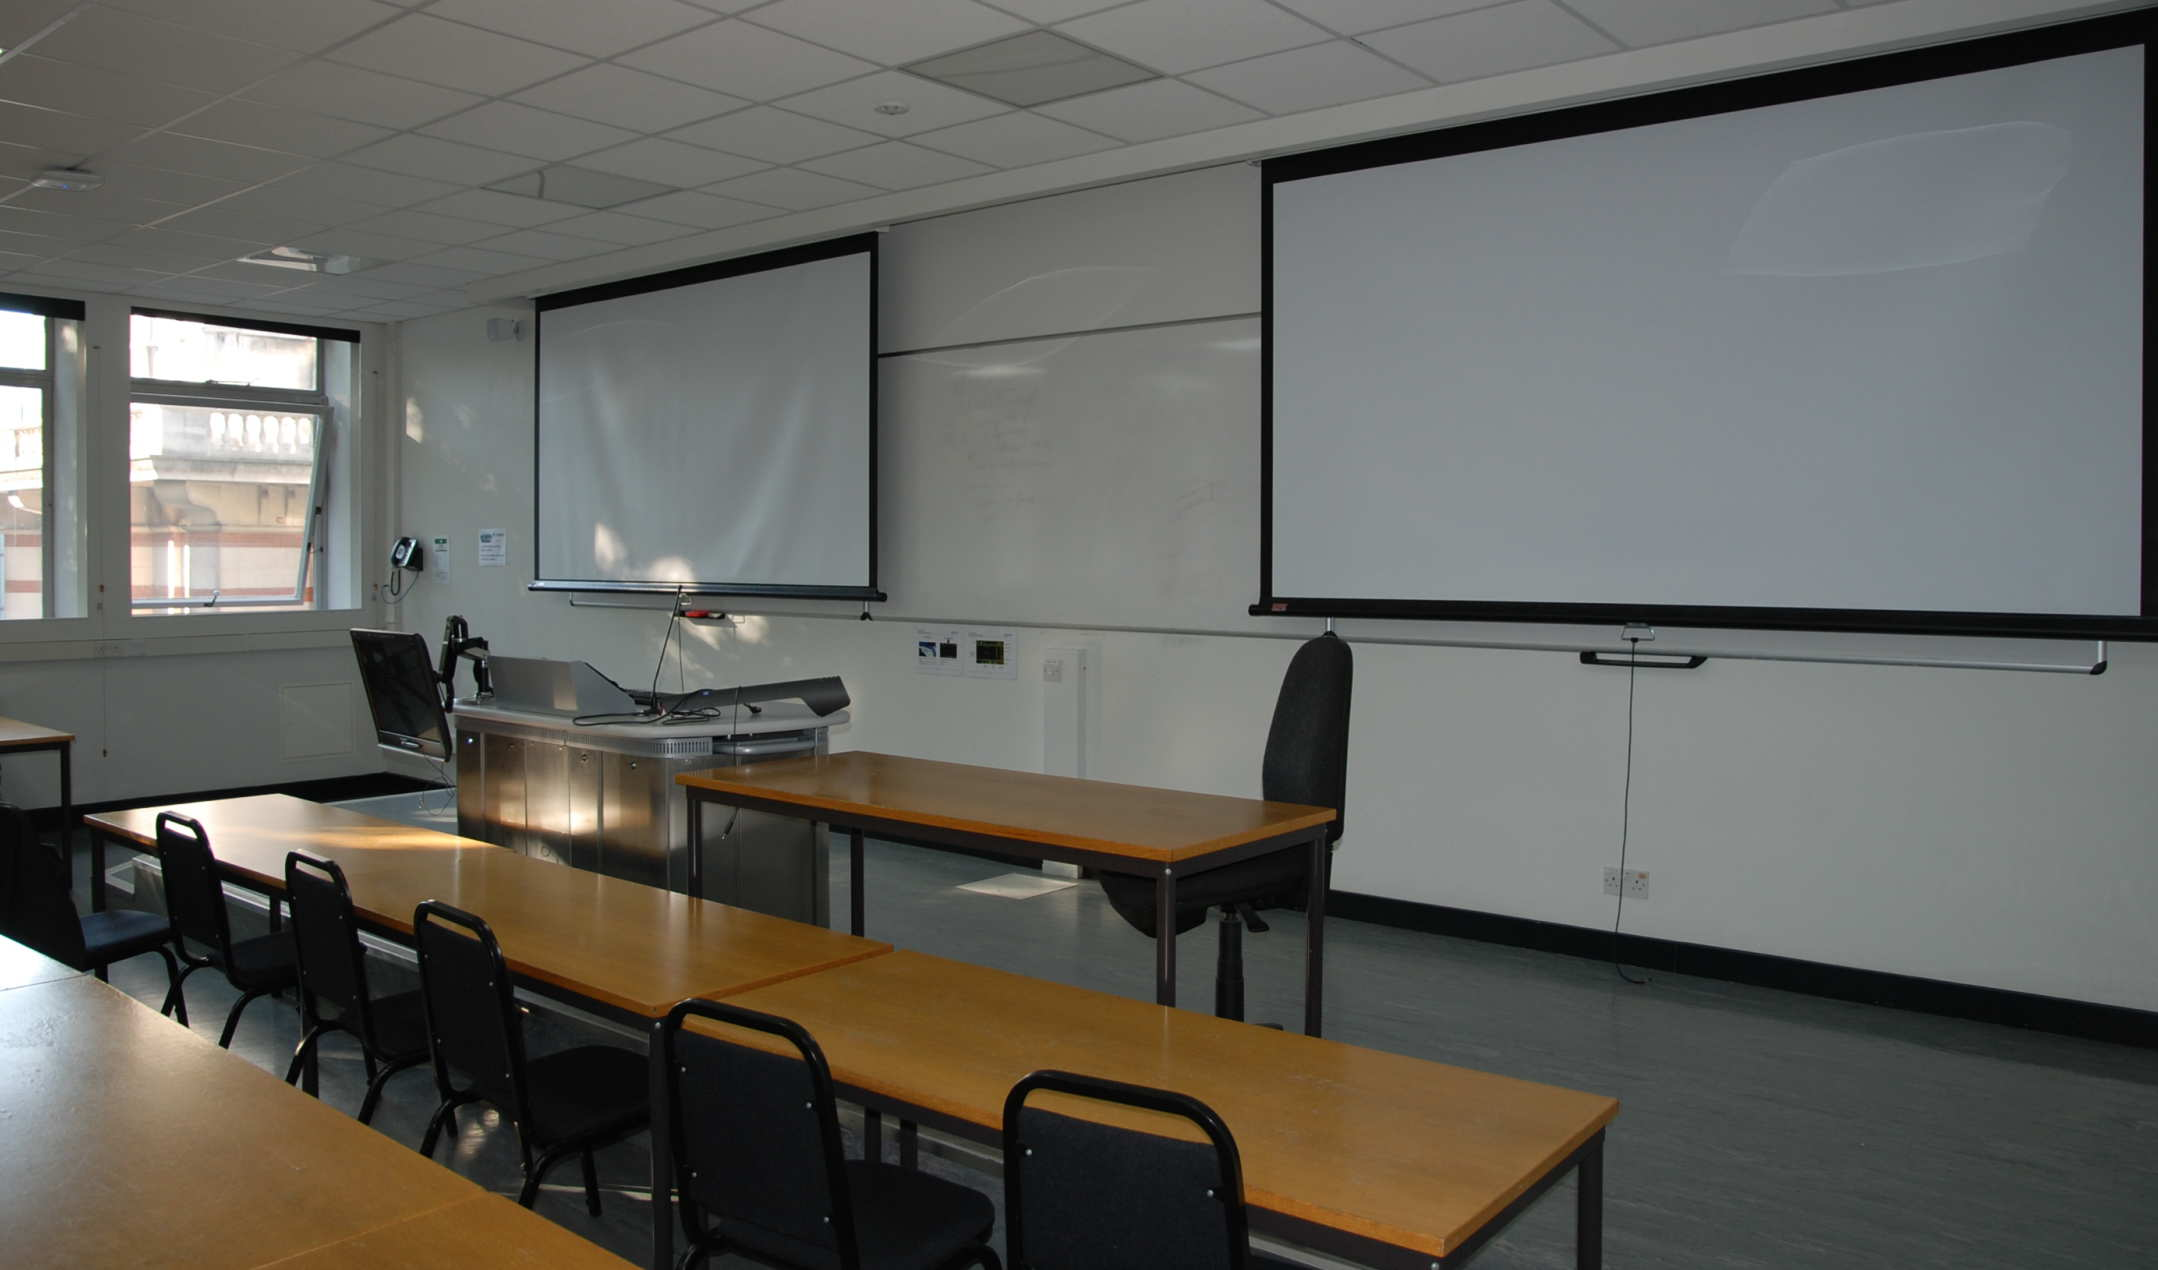 Skempton Building - Room 301